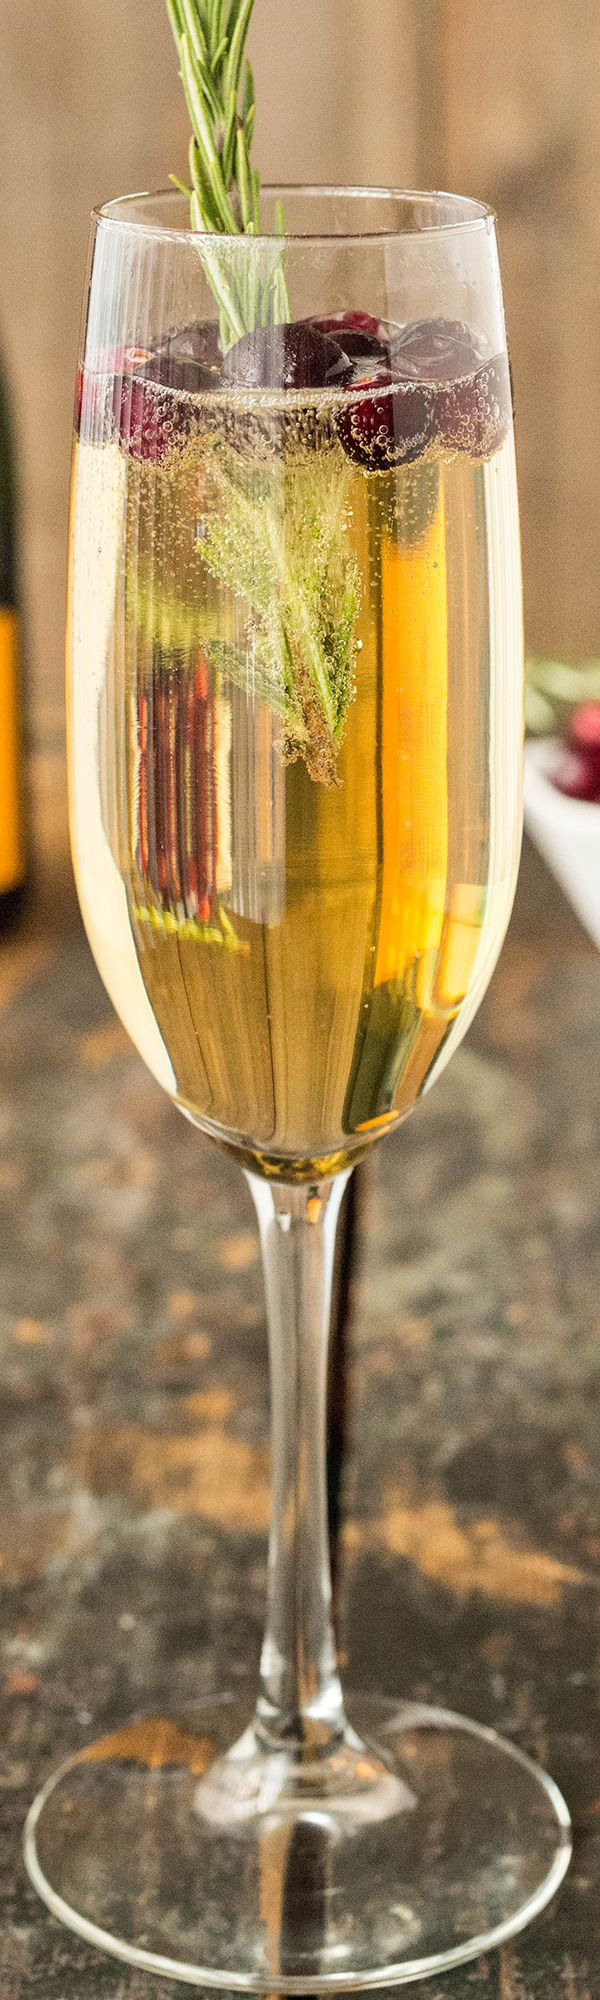 4 Different Ways to make Fall Mimosas. Perfect Thanksgiving drink recipes!